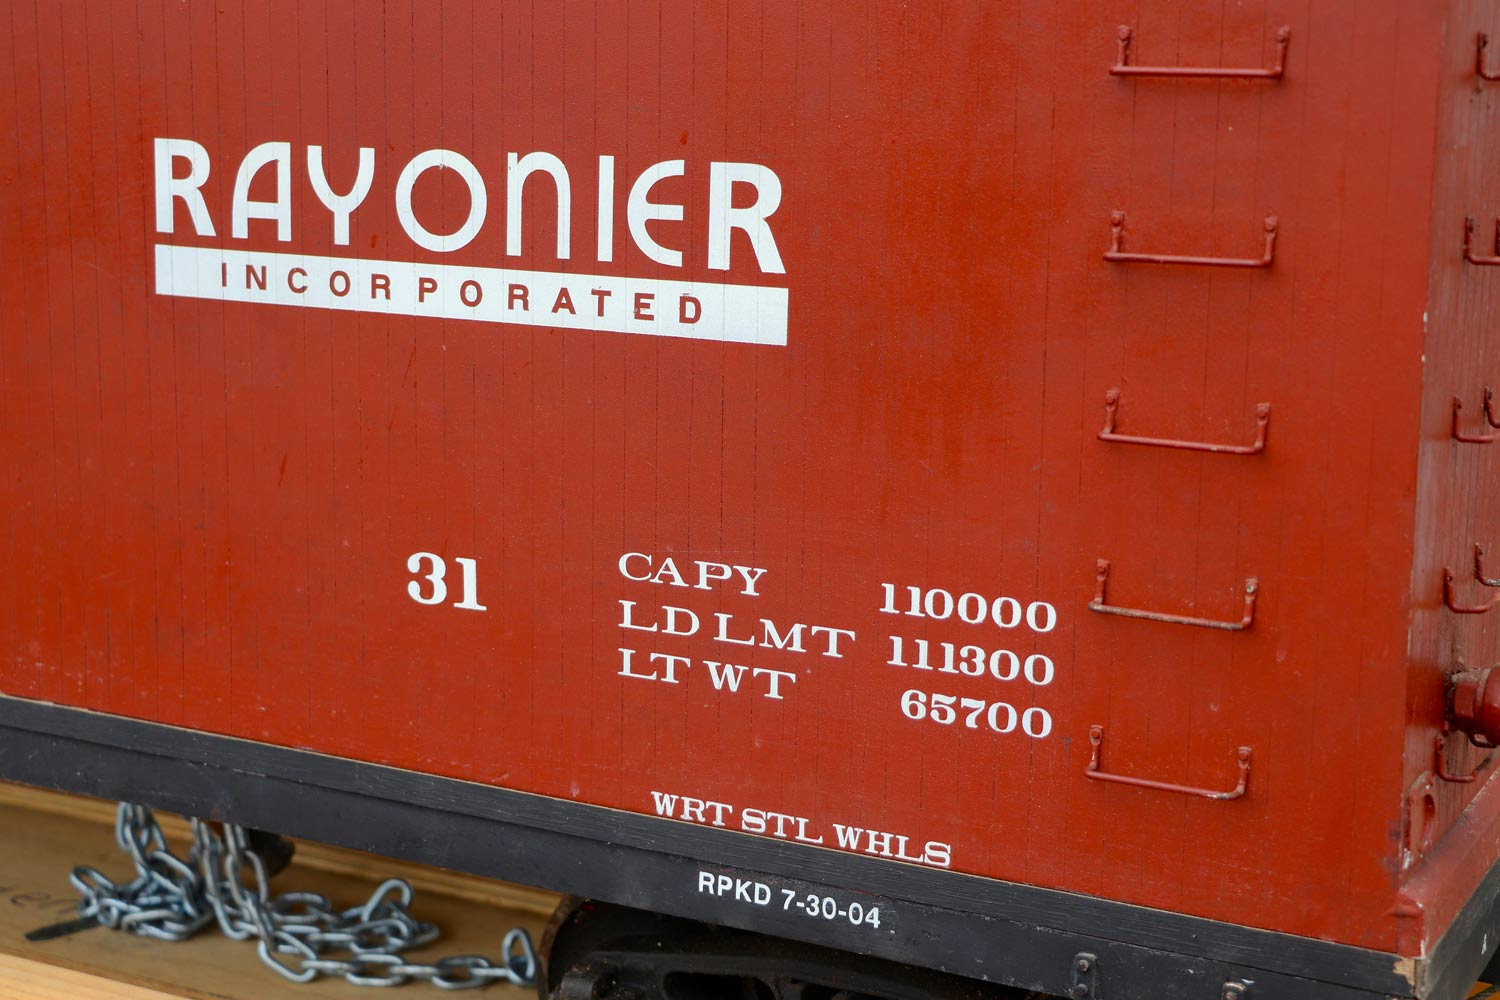 test 7-and-a-quarter-inch-brown-rayonier-hc-railroad-carriage-live-steam-for-sale-04